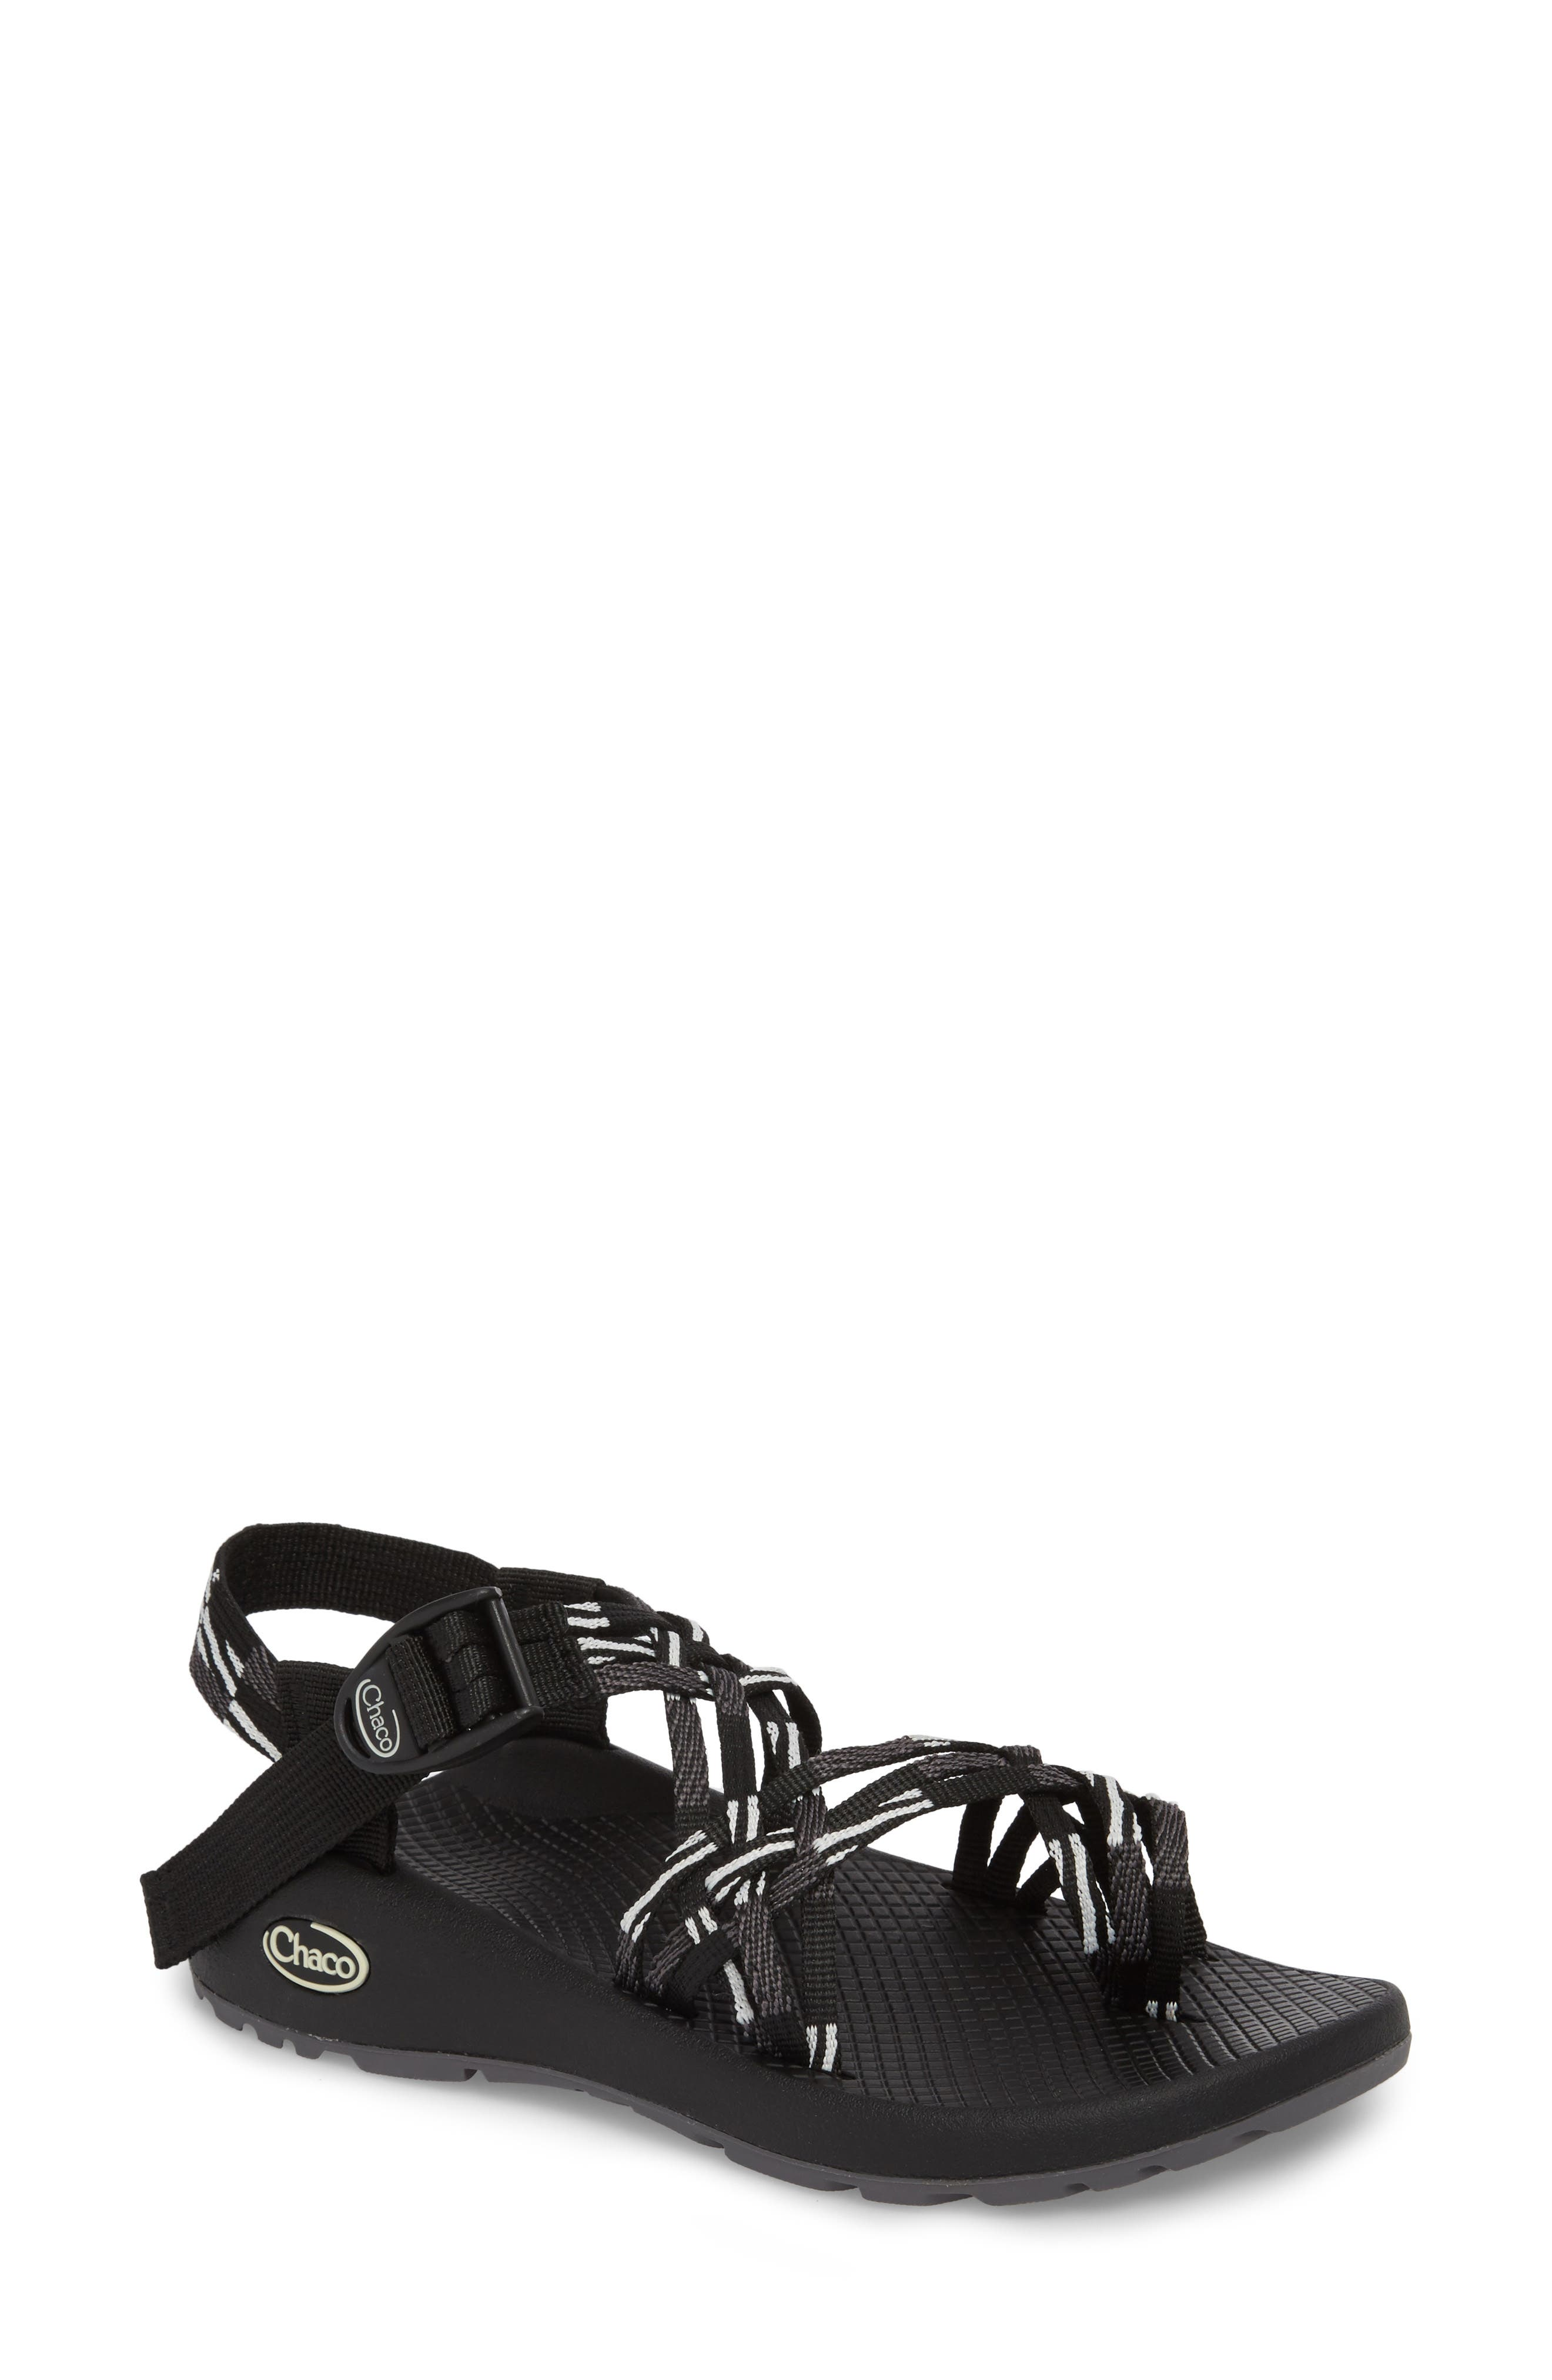 ZX/3<sup>®</sup> Classic Sandal,                             Main thumbnail 1, color,                             SCATTER BLACK / WHITE